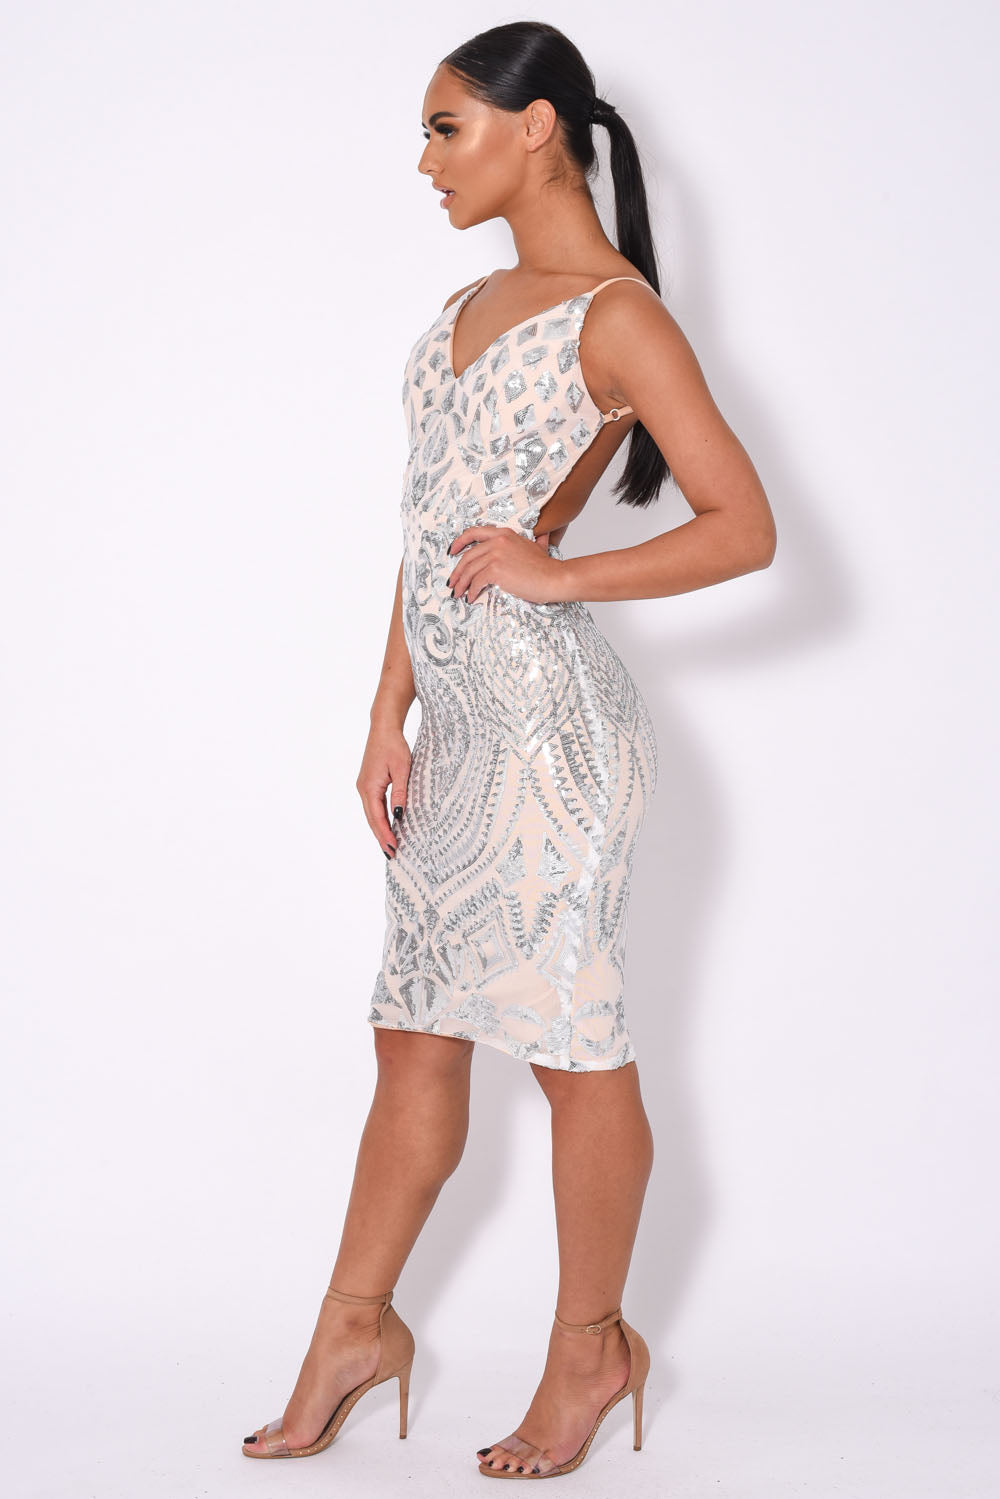 High Shine Luxe Silver Sequin Backless Midi Dress